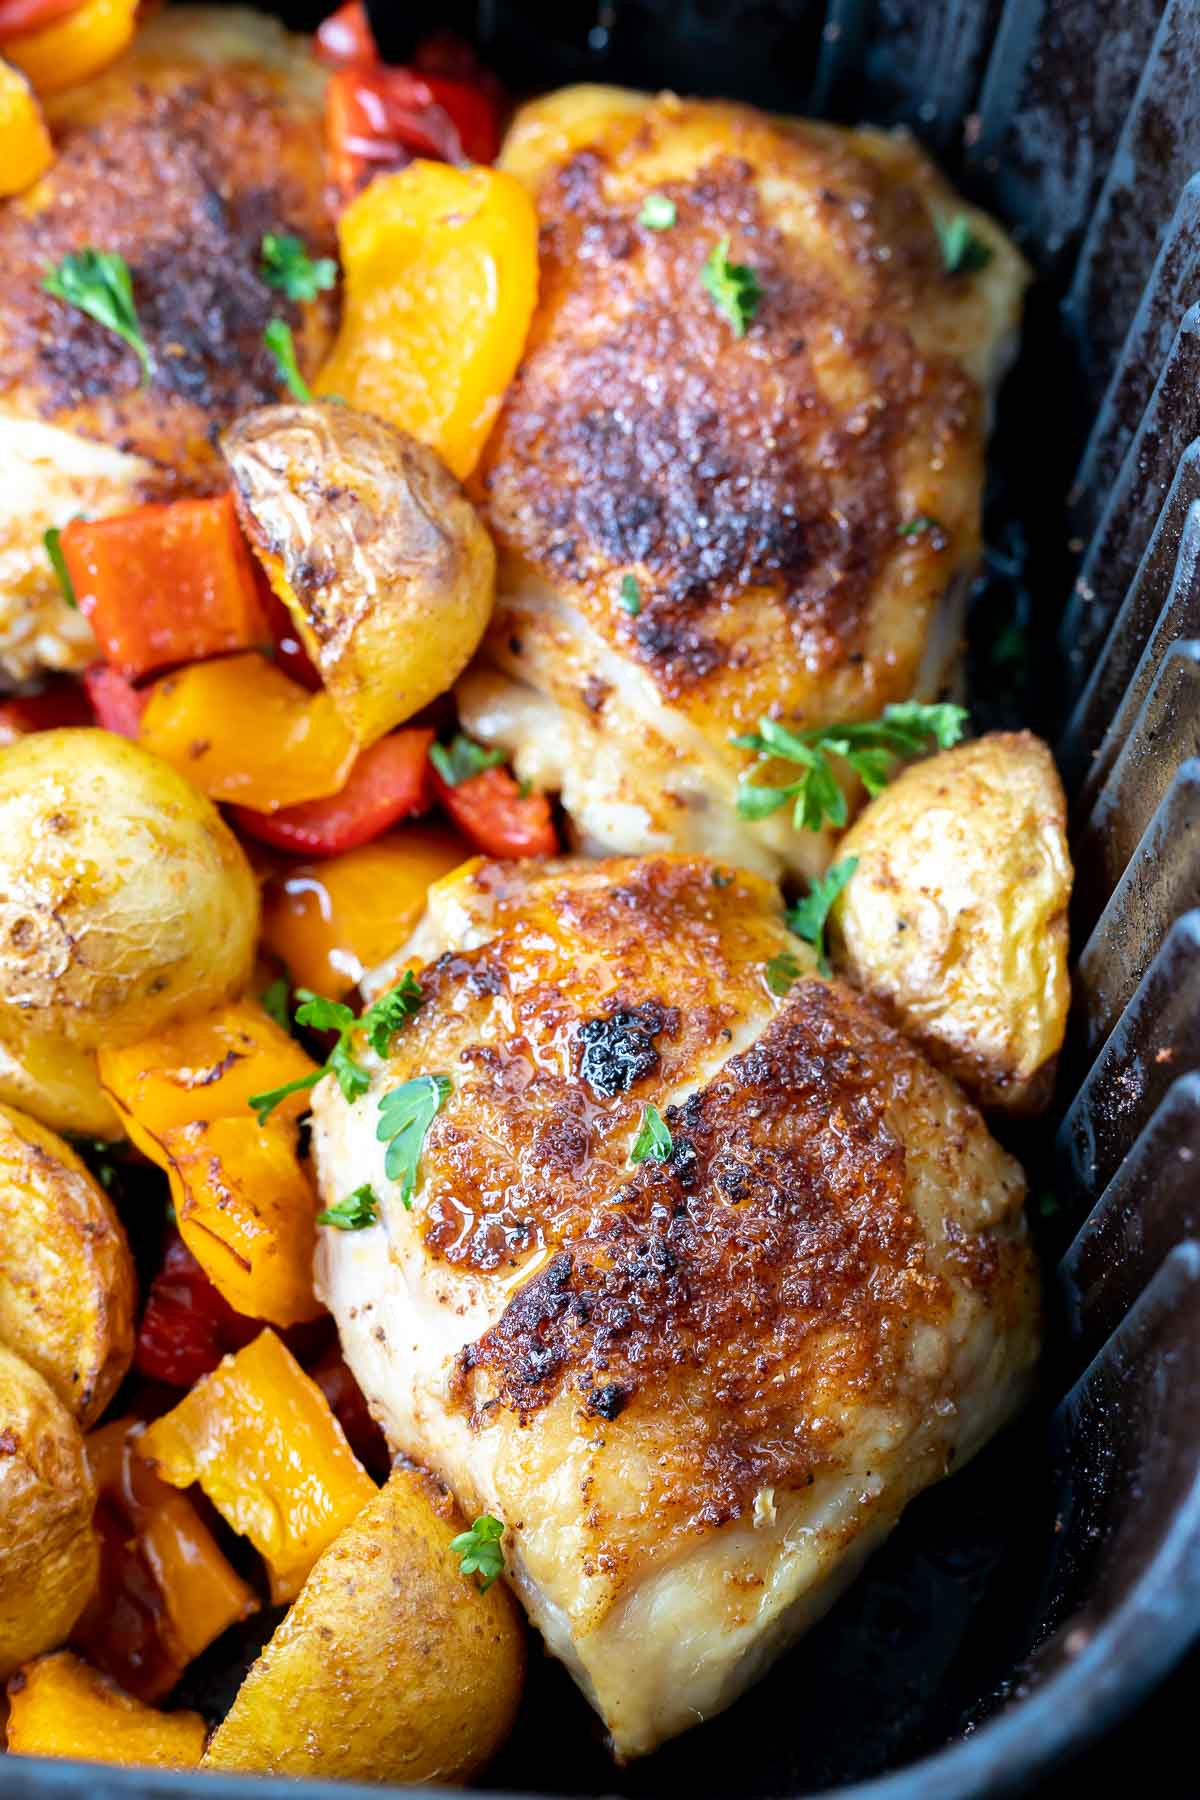 cooked chicken thighs, potatoes and peppers in air fryer basket